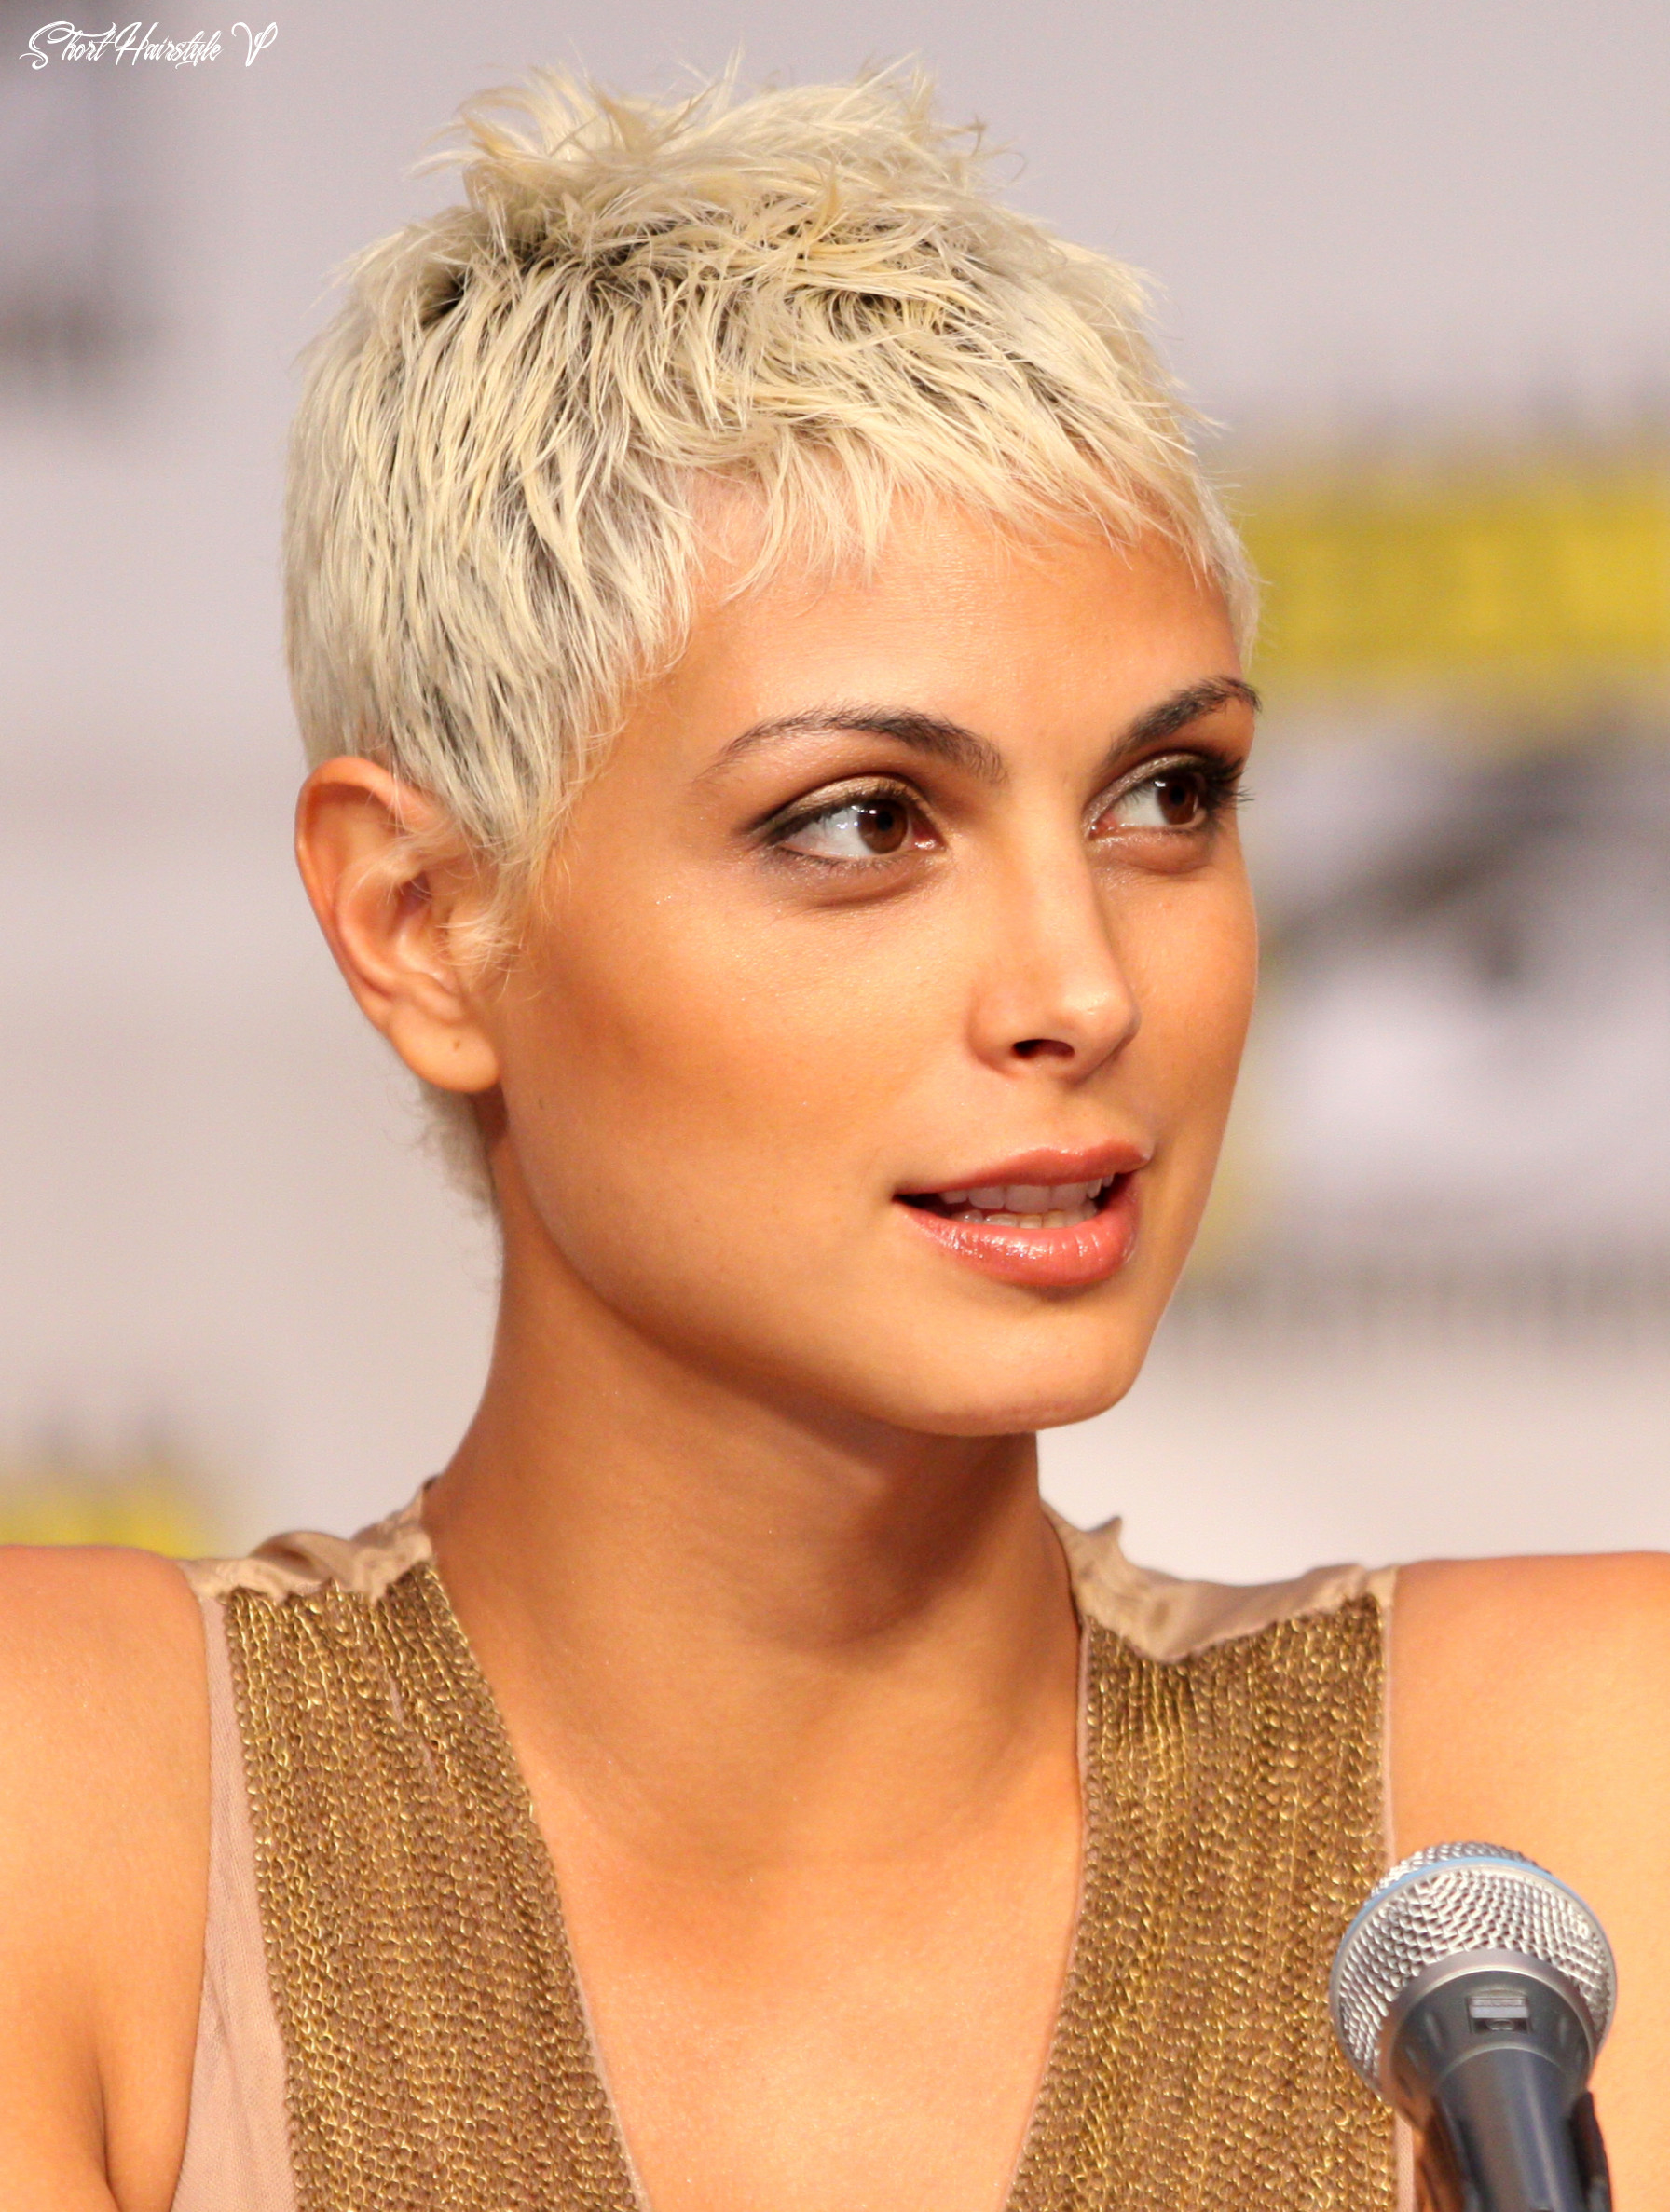 Pixie cut wikipedia short hairstyle v